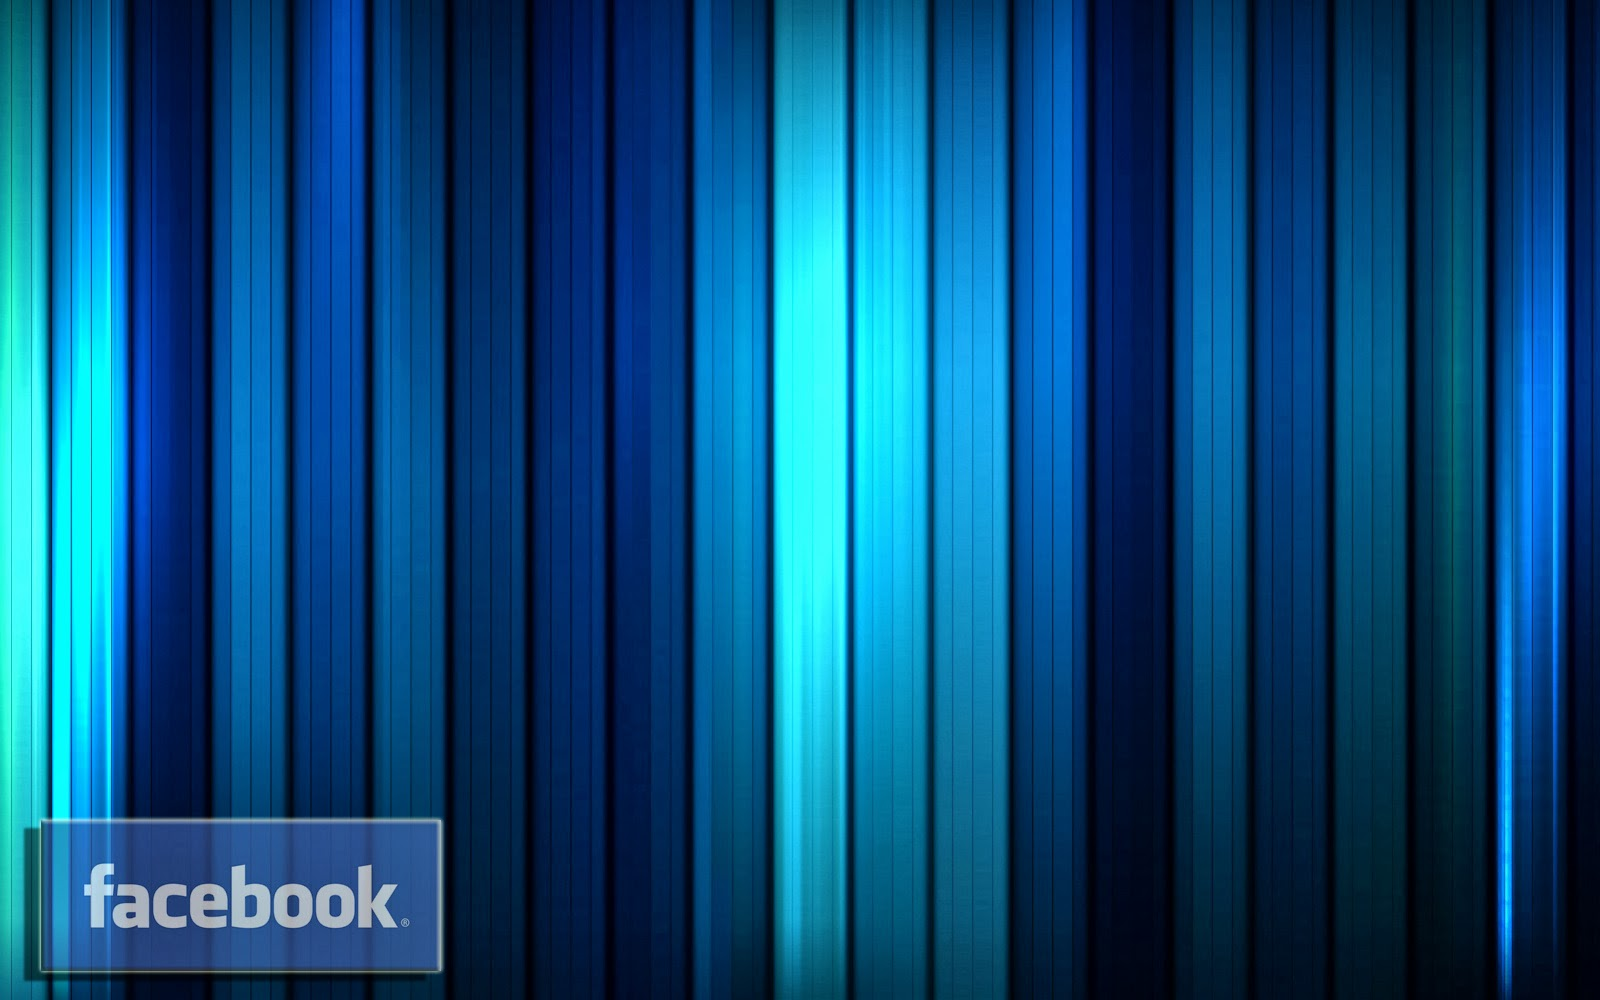 Hd Wallpapers Blog: Facebook Background Wallpapers